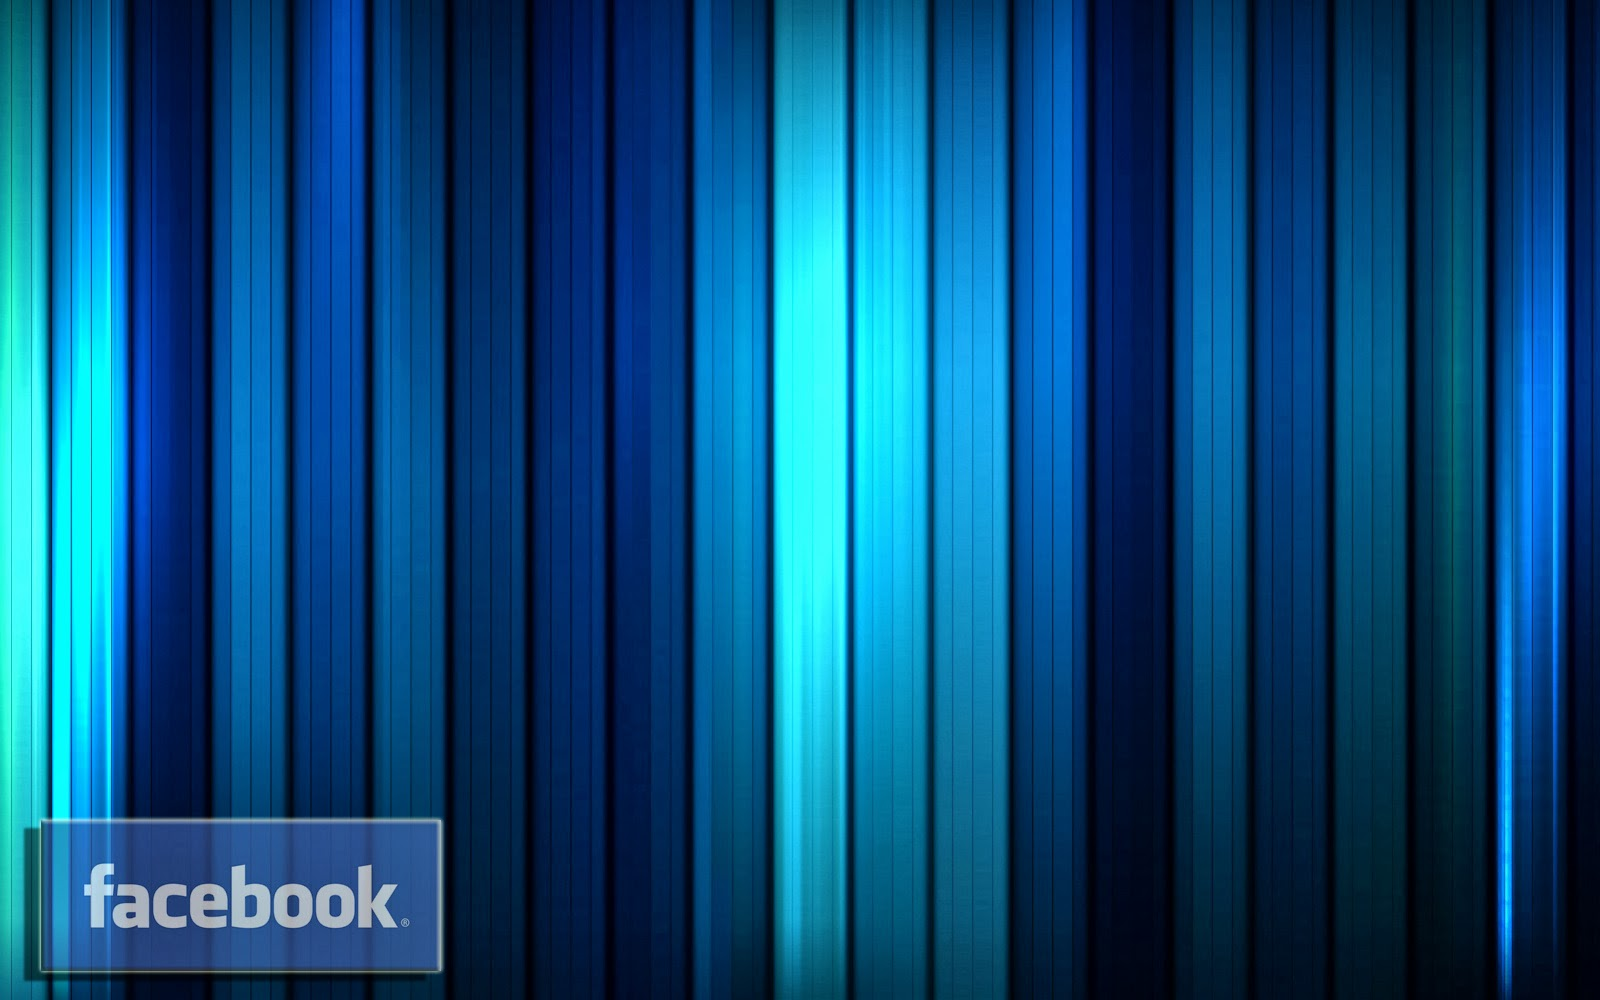 Hd Wallpapers Blog: Facebook Background Wallpapers